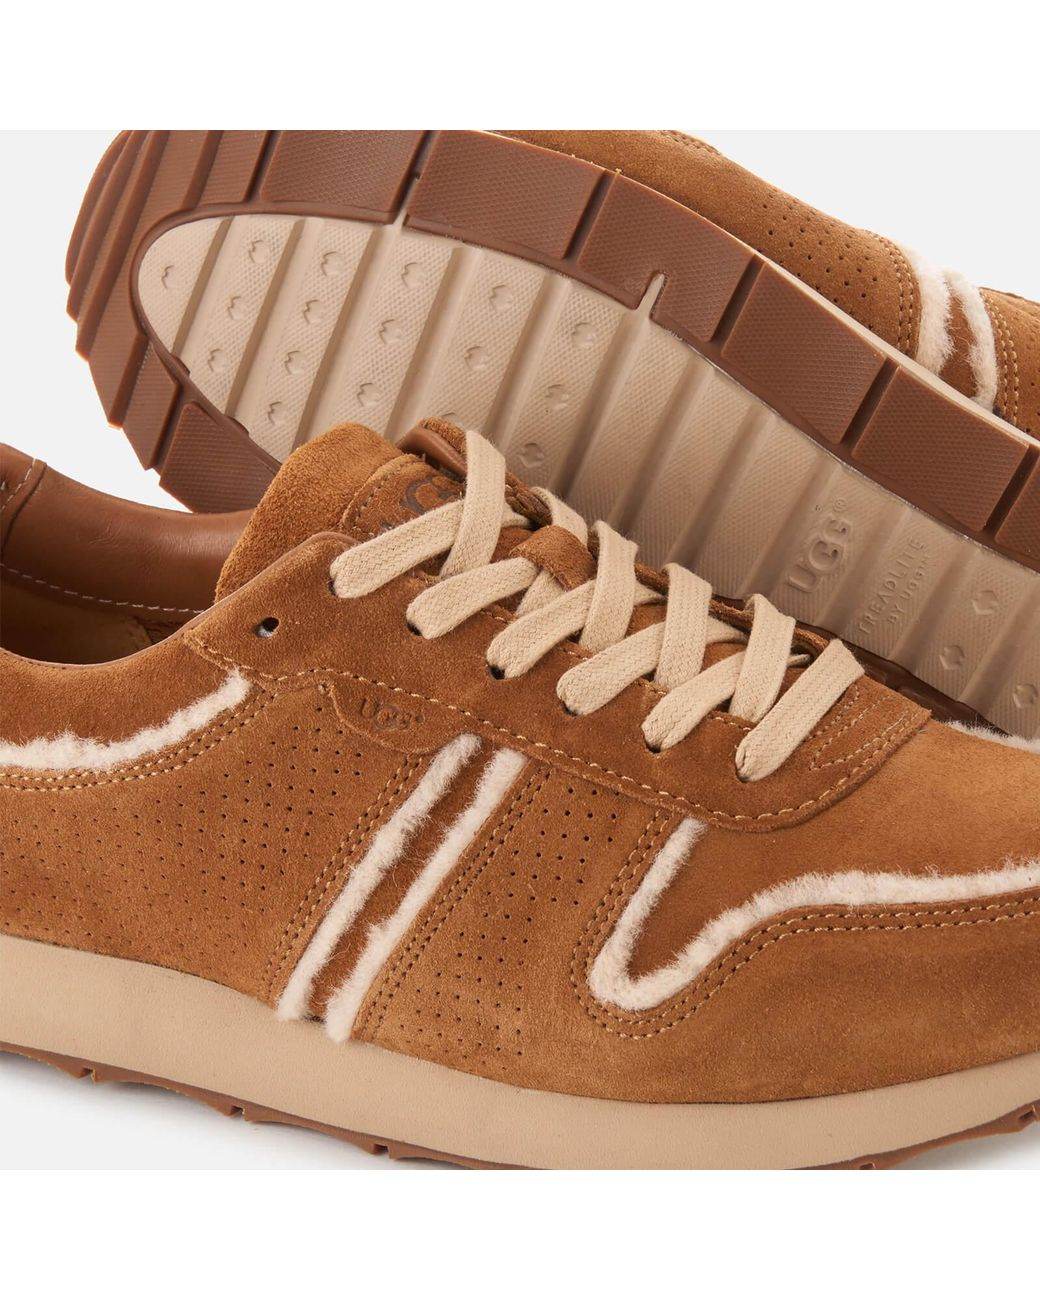 976135efc23 Men's Brown Trigo Spill Seam Suede Runner Style Sneakers